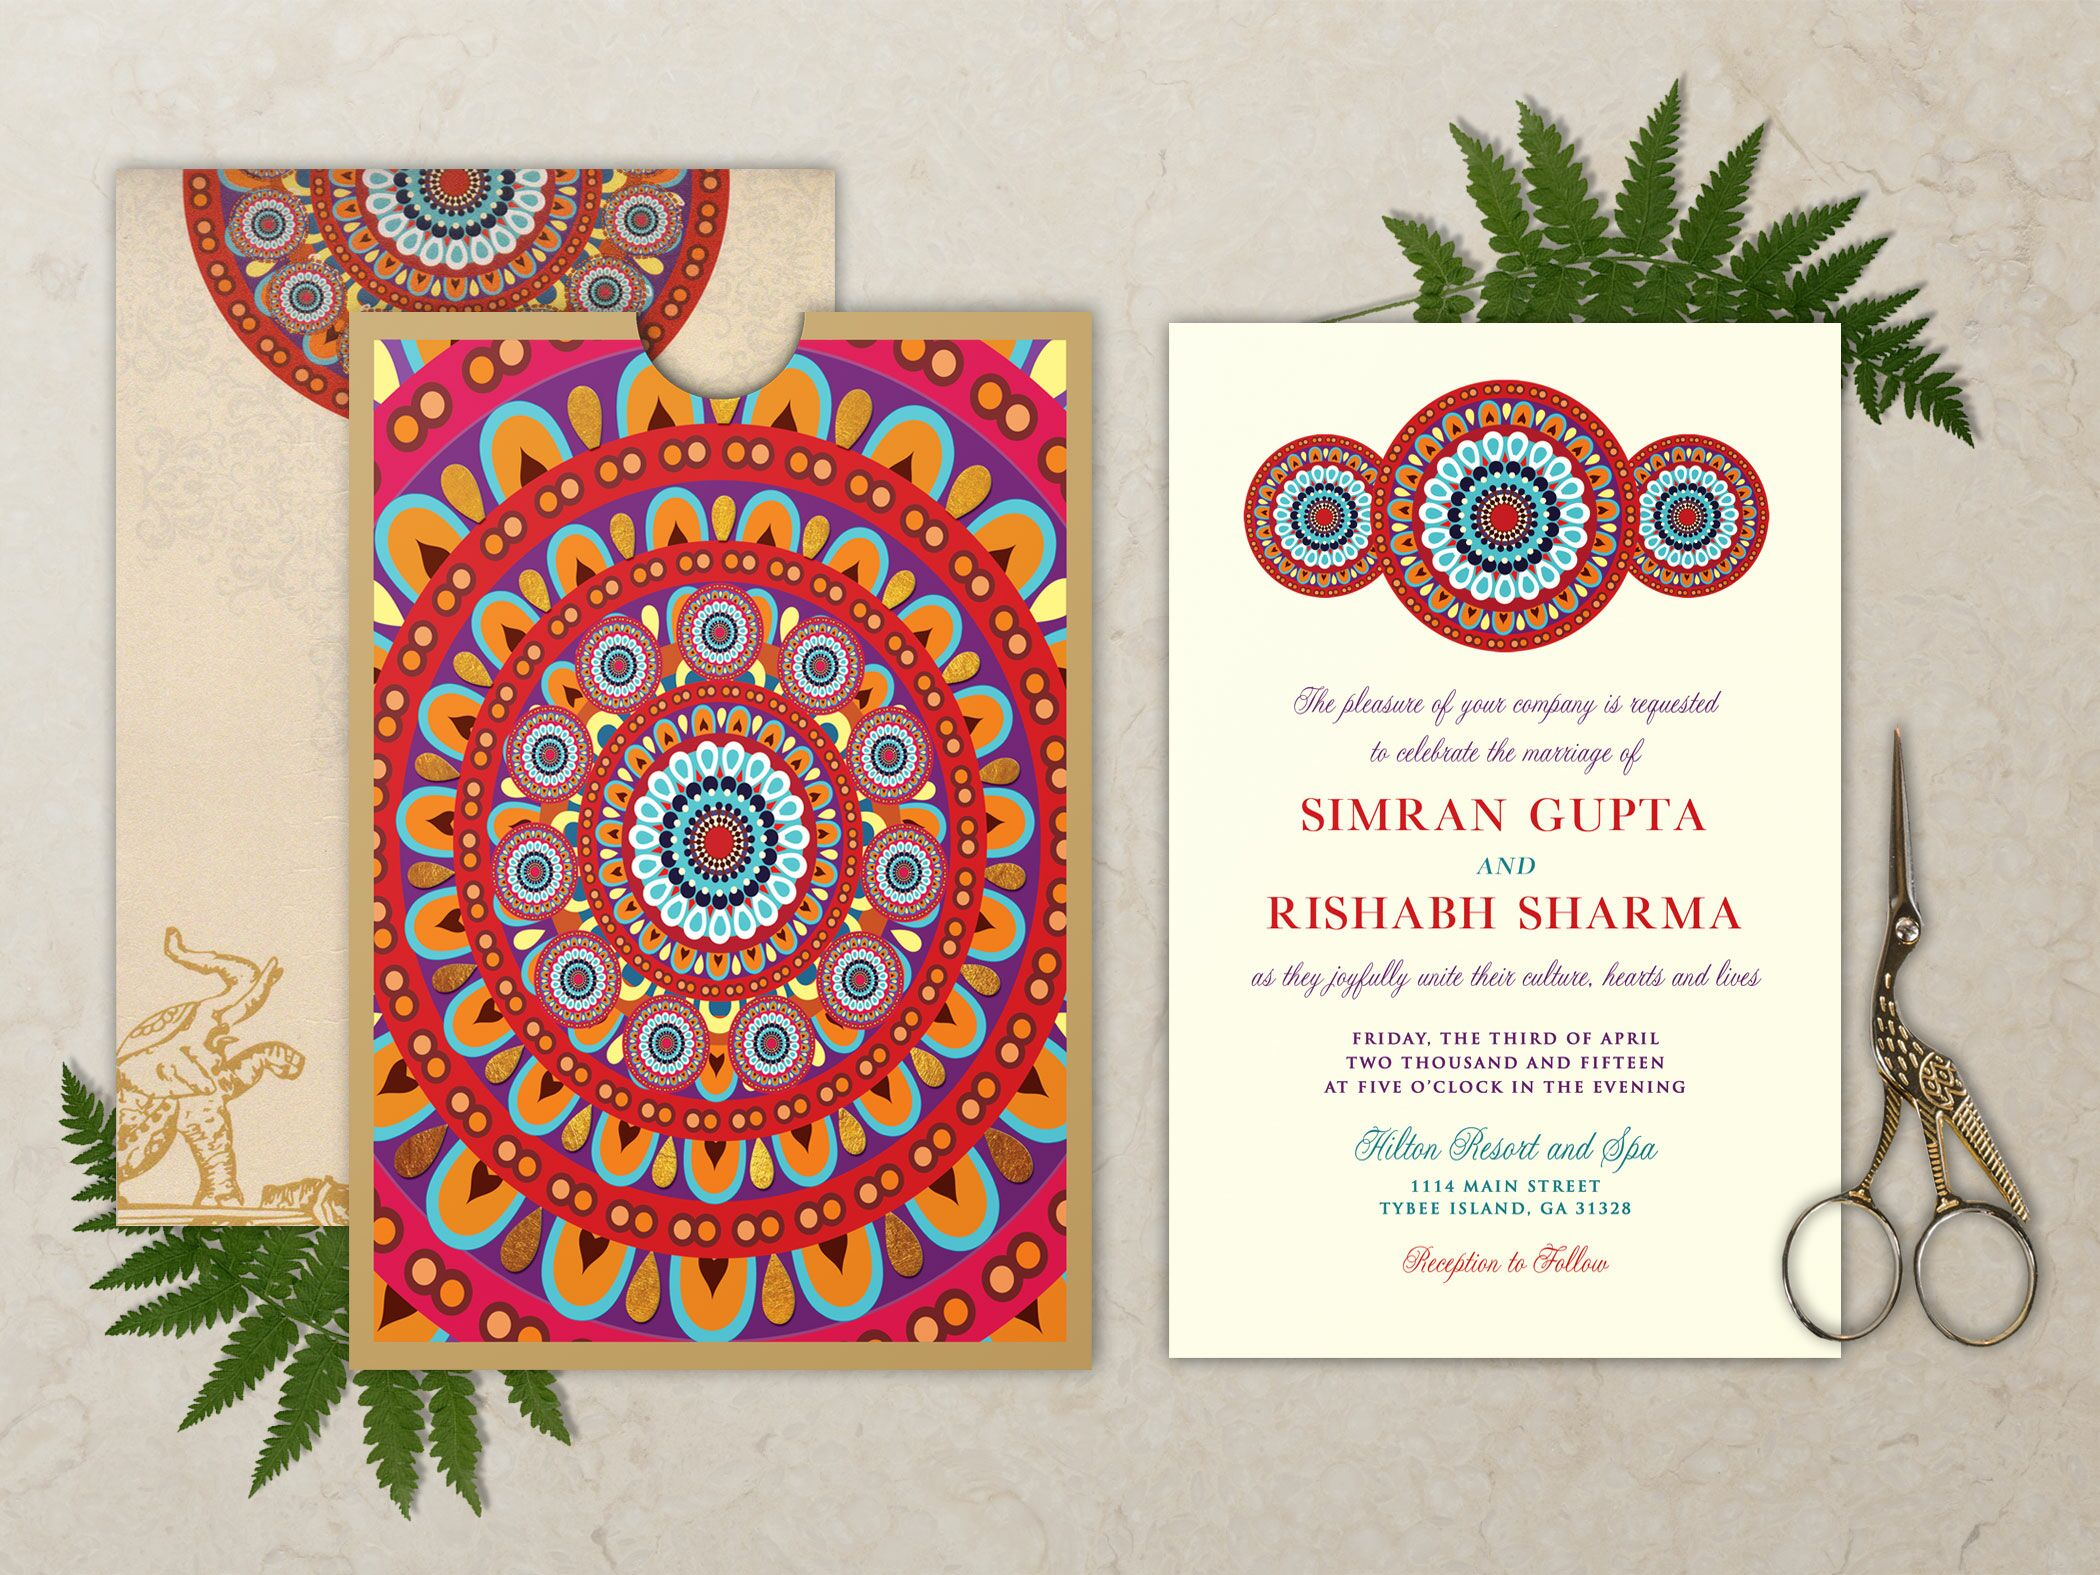 Invitations + Paper in Houston, TX - The Knot